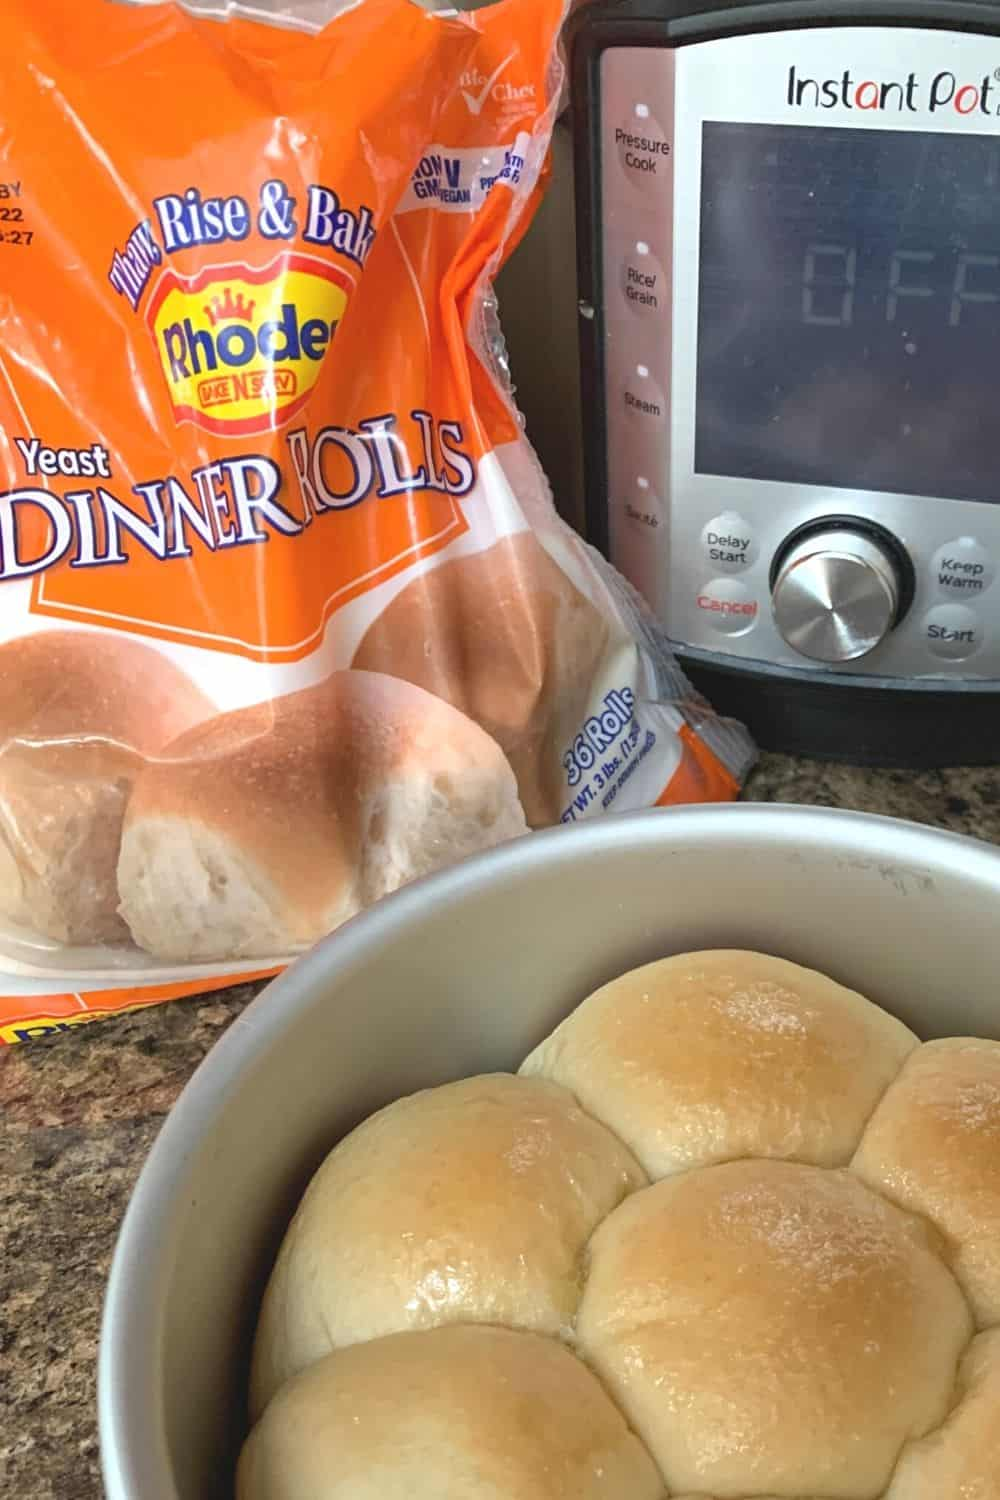 a package of frozen Rhodes yeast rolls next to an Instant Pot, with a pan of baked rolls in the front